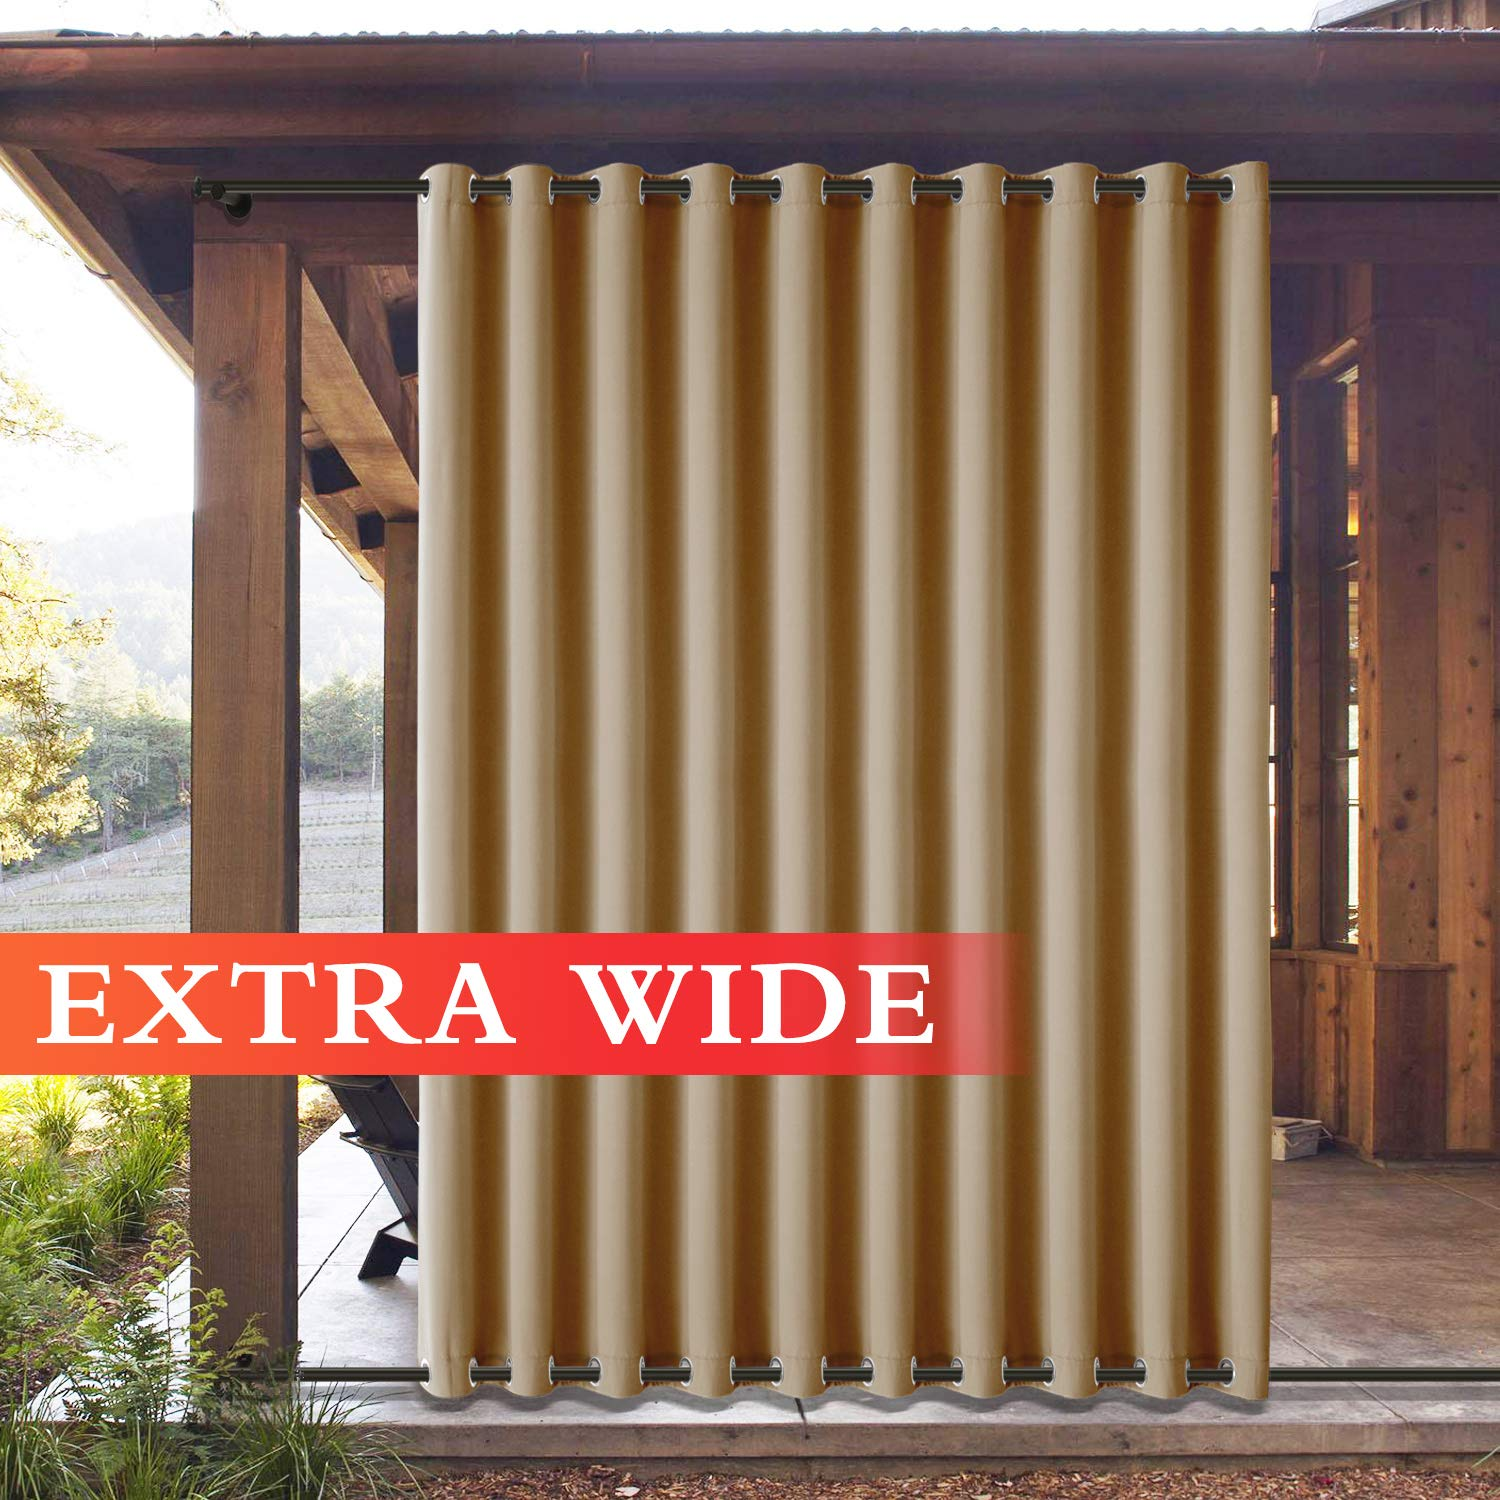 Frelement Outside Drapes Panels for Patio Cabana Indoor/Outdoor Decoration Water Repellent Heat Insulated Outdoor Curtains Rustproof Grommet Top and Bottom, Wheat 100W x 102L (1 Panel)